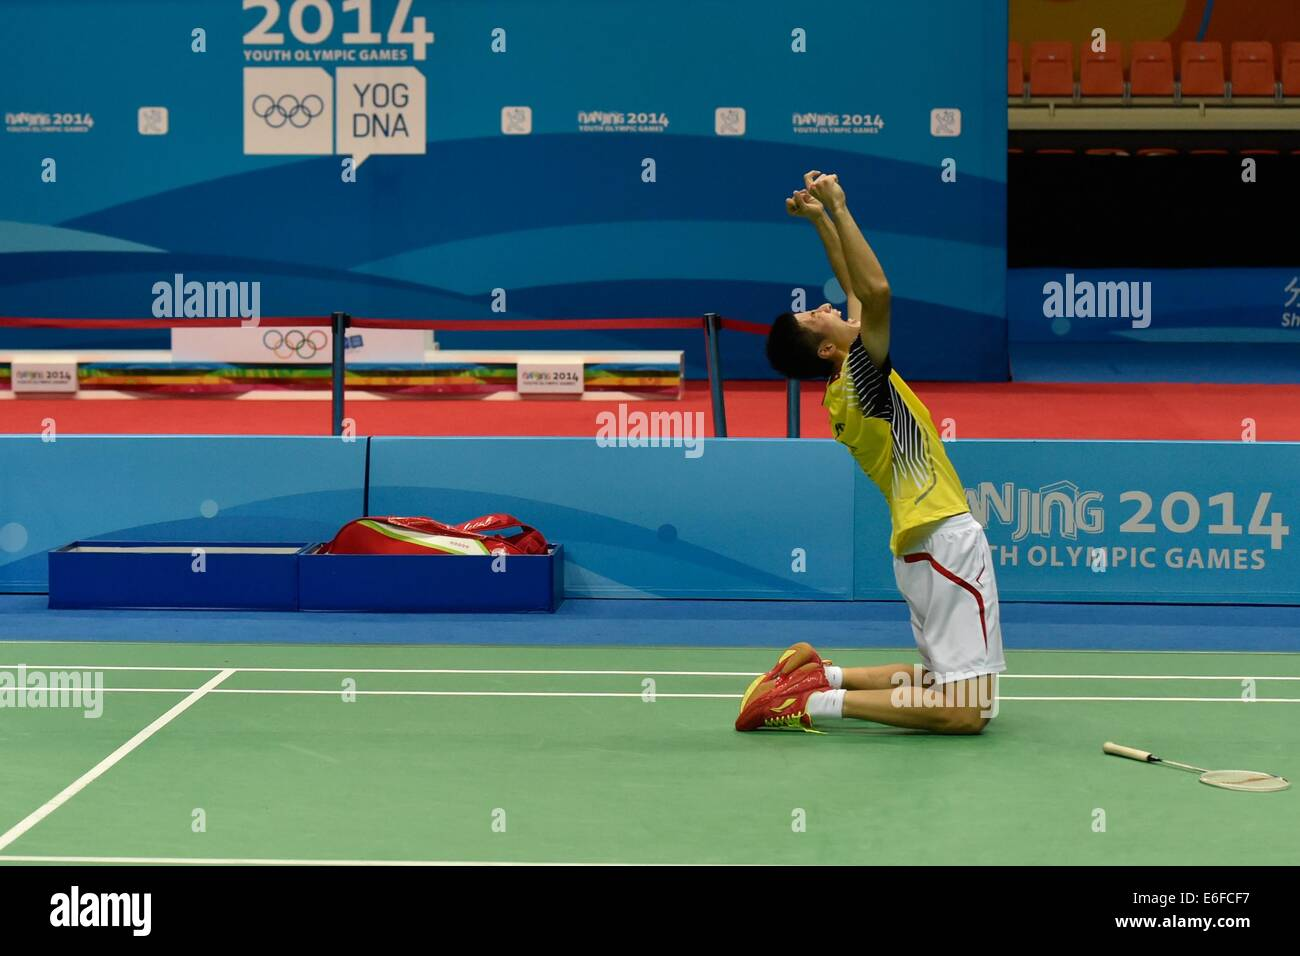 Nanjing China s Jiangsu Province 22nd Aug 2014 Shi Yuqi of